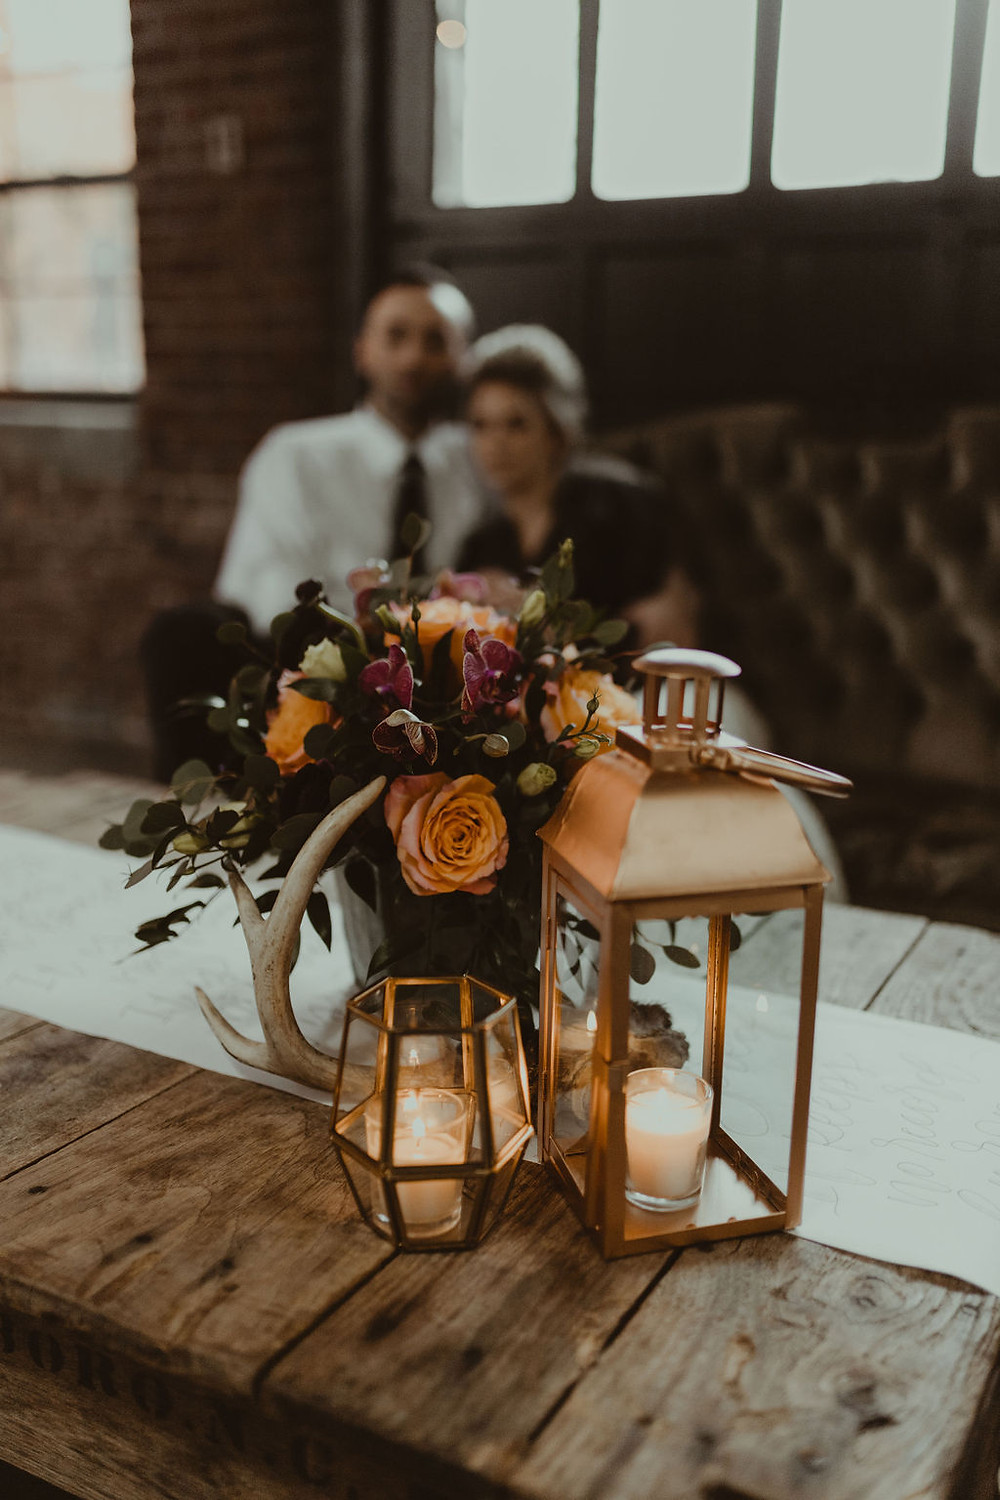 Vintage Lounge Decor: Industrial & Copper Styled Wedding Shoot at Smith's Market featured on Pretty Little Vintage Co.